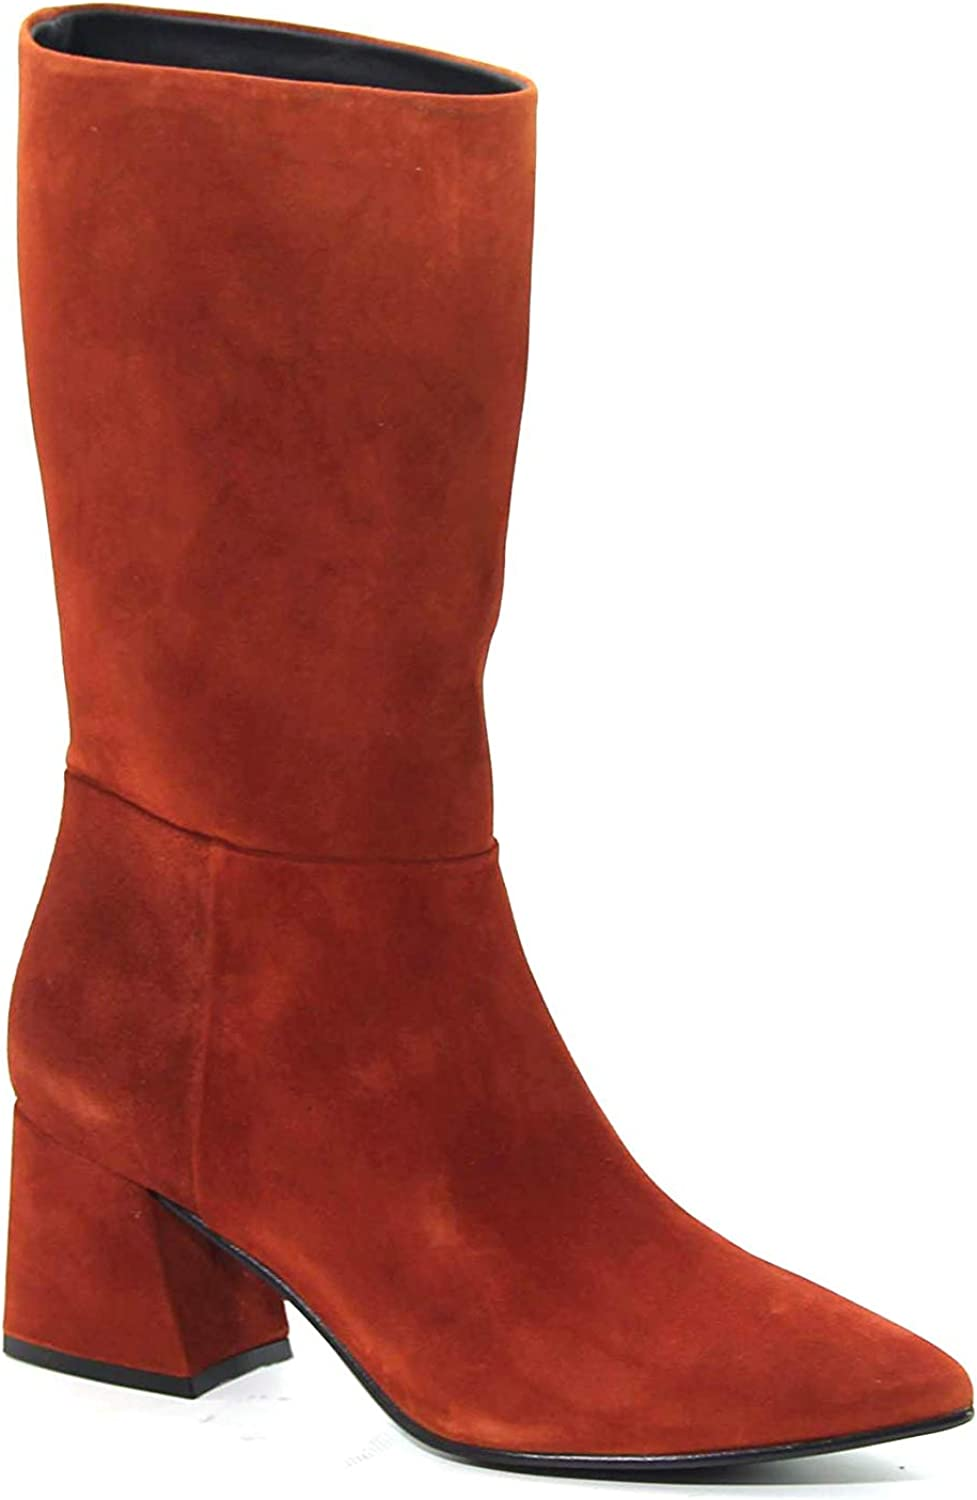 PONS QUINTANA Women's 7315006RED Brown Suede Ankle Boots